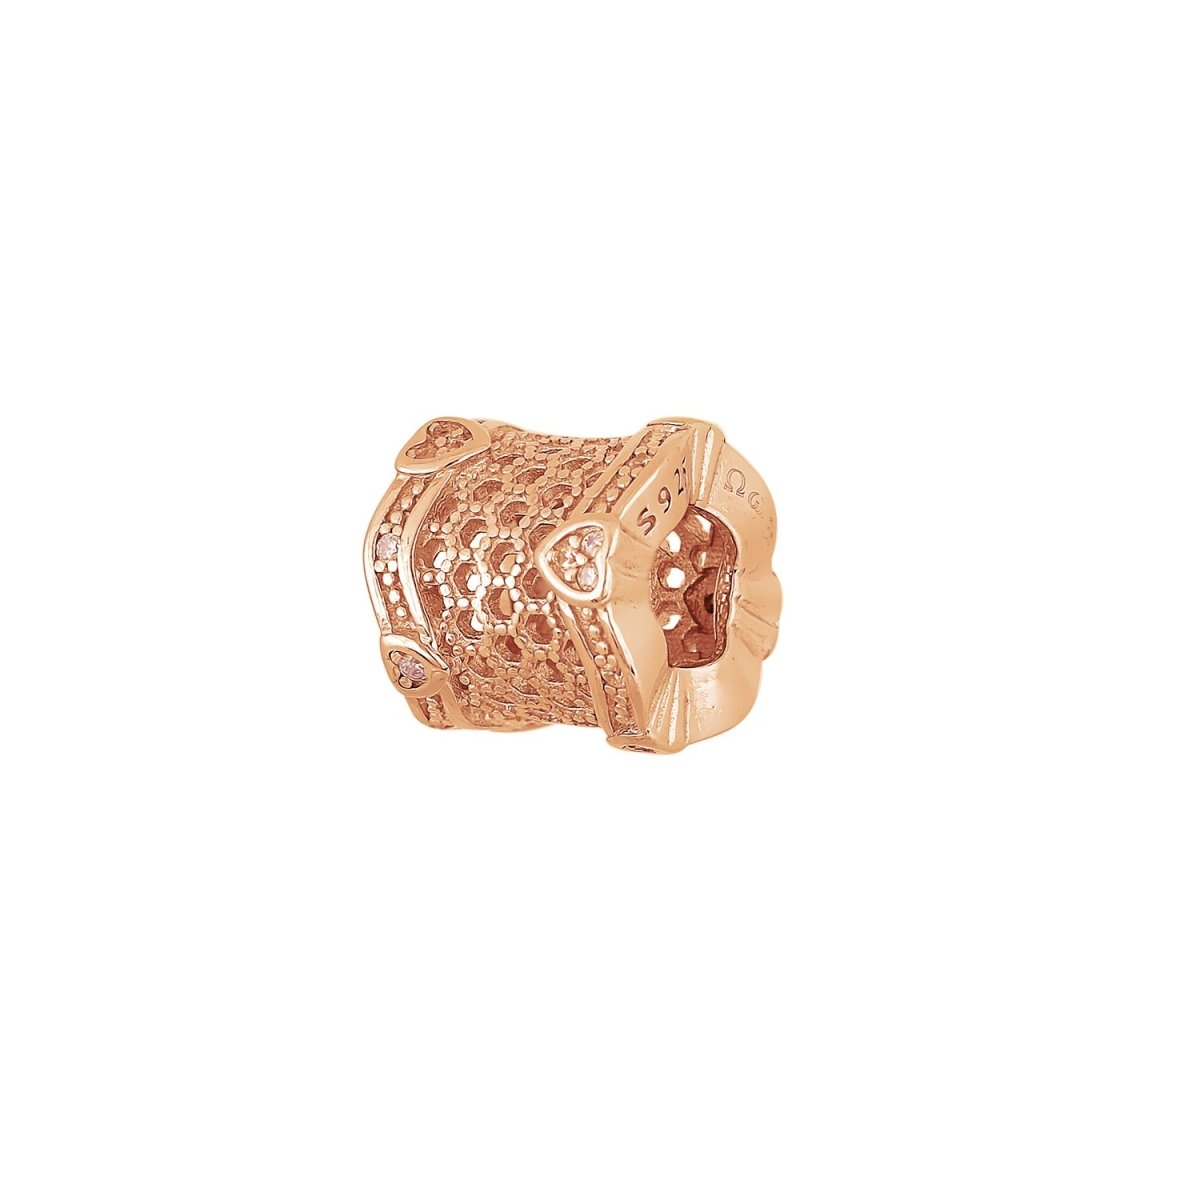 Motif for Bracelet D108R Made of Rose Gold Plated Silver - Goldy Jewelry Store